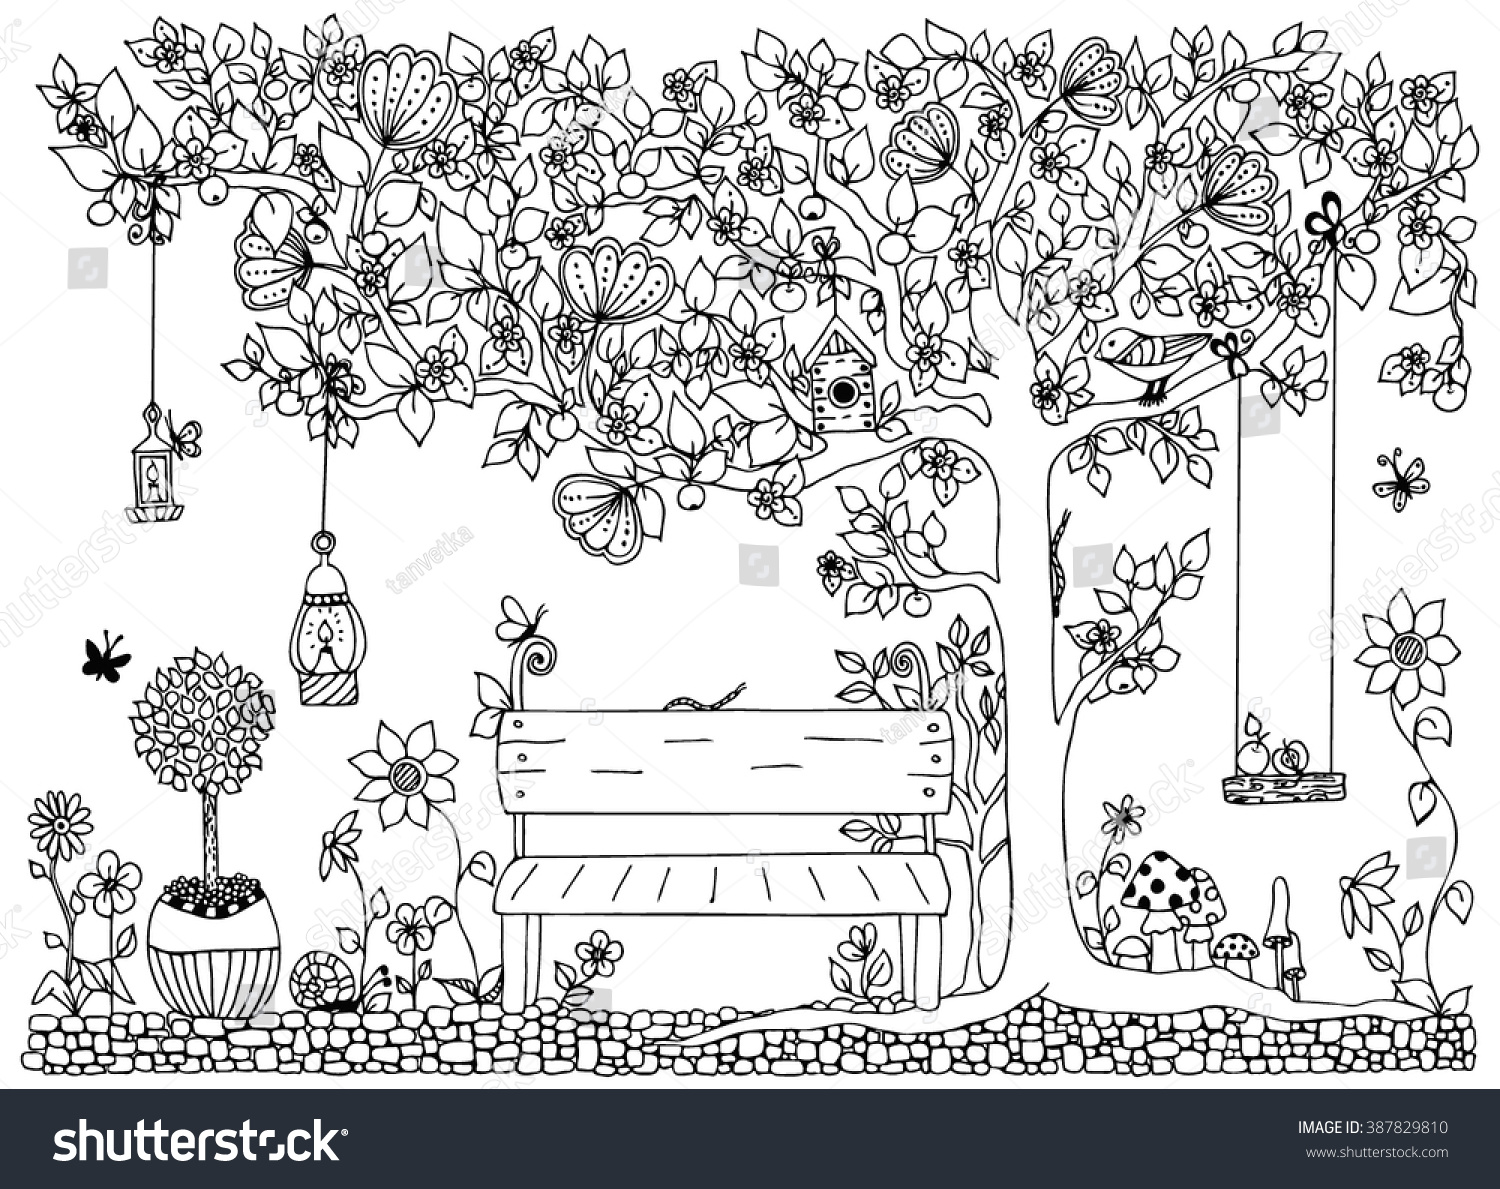 Coloring pictures of flowers and trees - Vector Illustration Zentangl Park Garden Spring A Bench A Tree With Apples